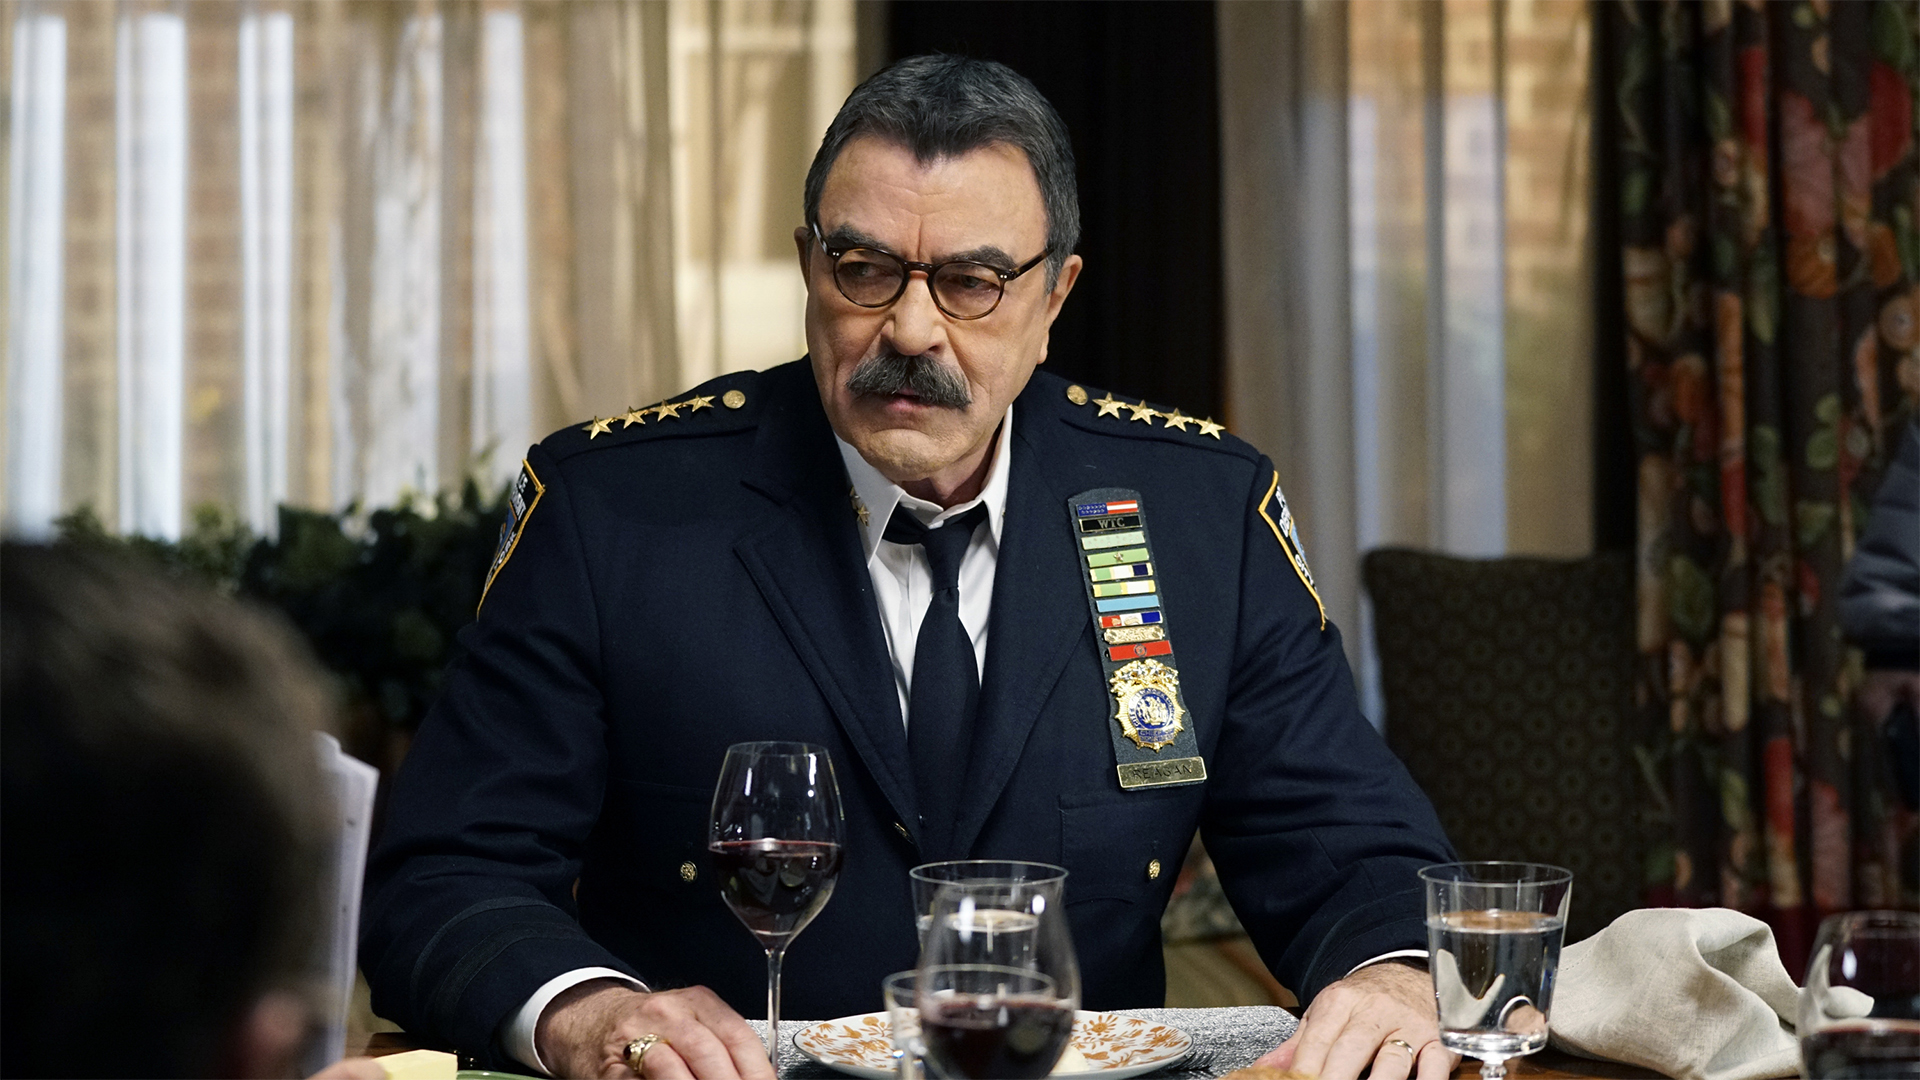 Watch Blue Bloods Season 8 Episode 18 Friendship Love And Loyalty Full Show On Cbs All Access